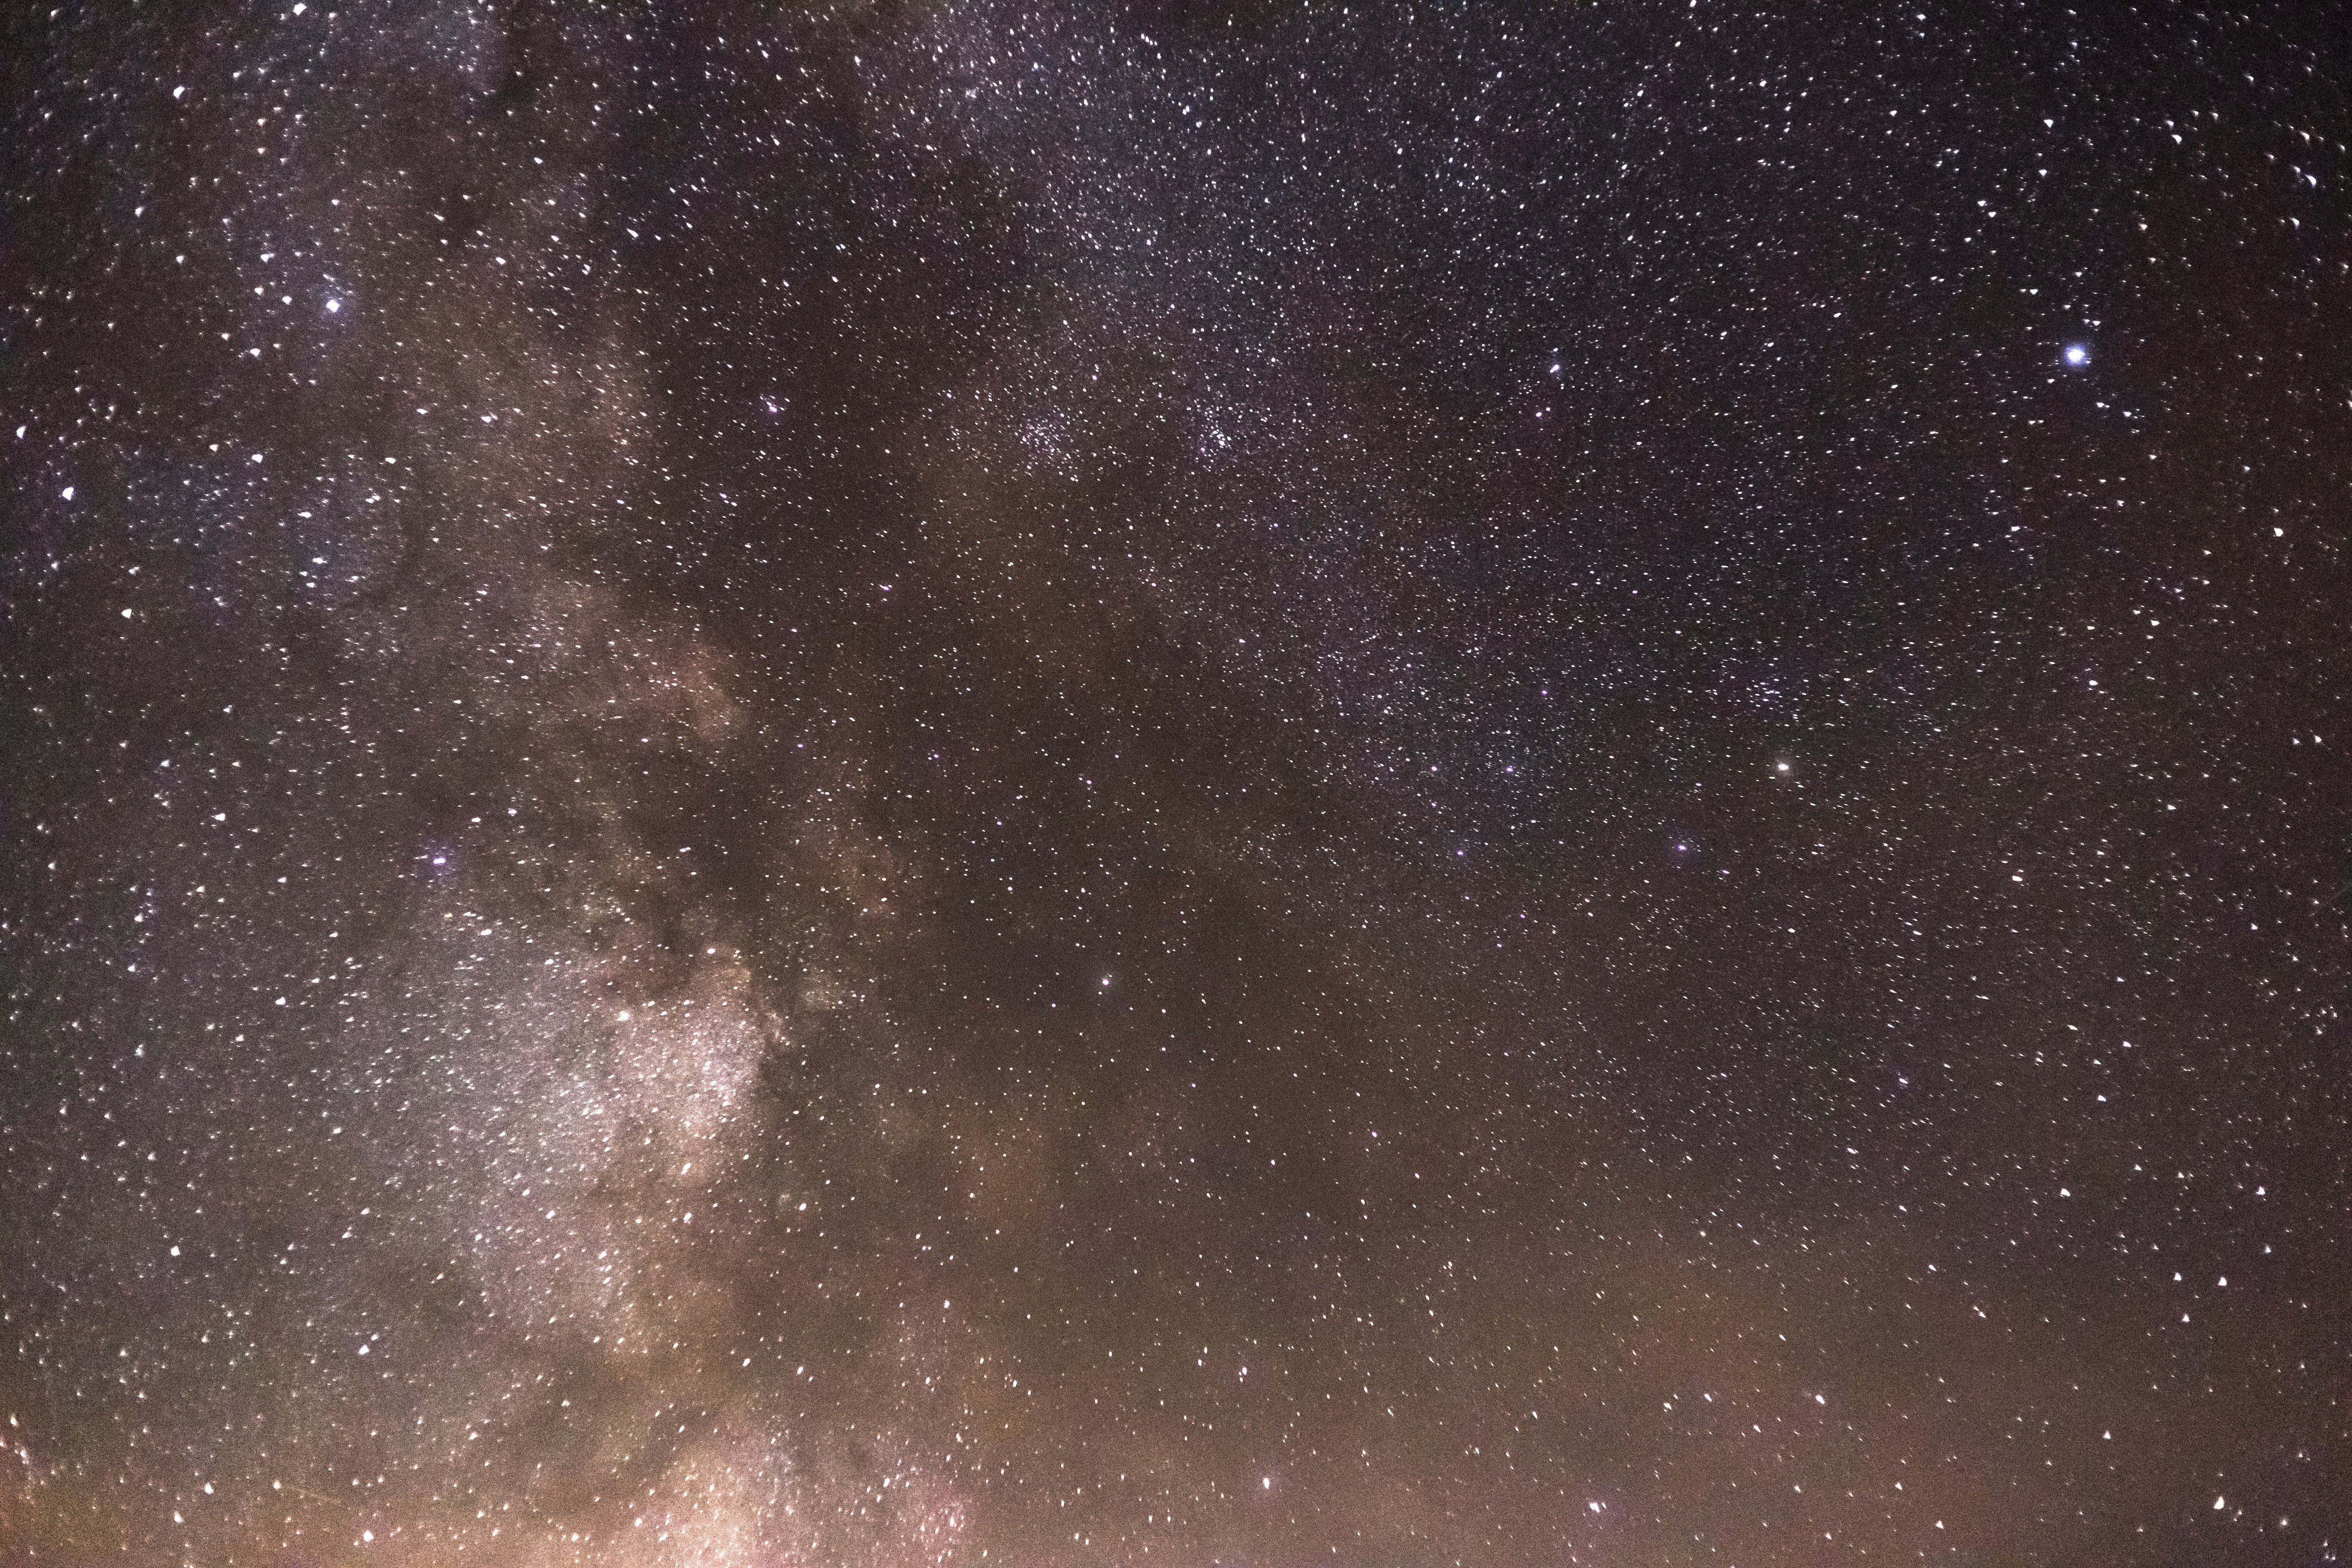 Low Angle View Photography of Stars, Astronomy, Outdoors, Stars, Starry sky, HQ Photo